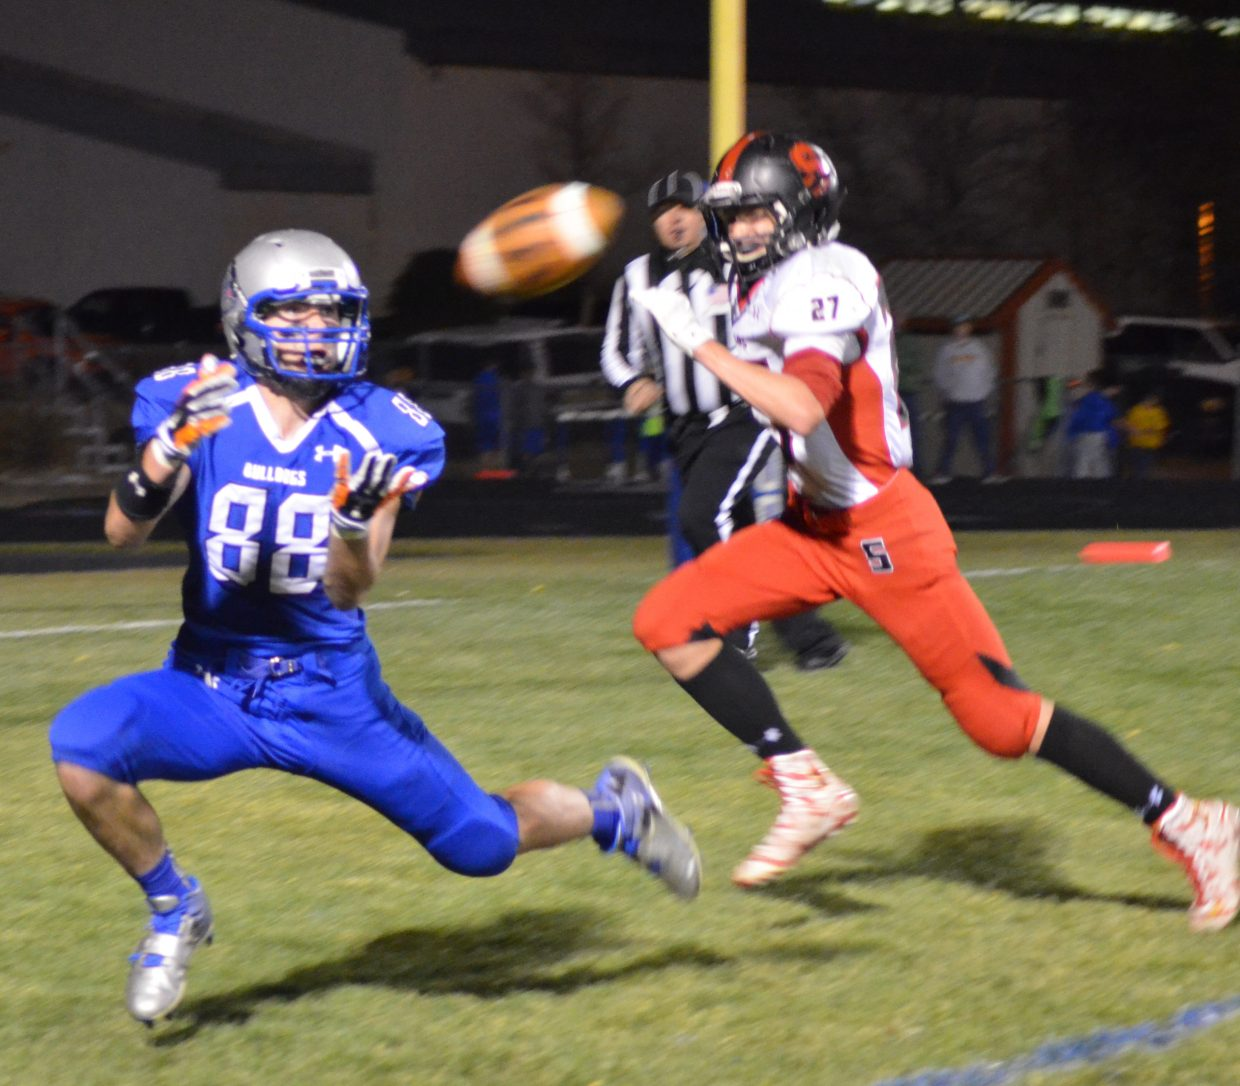 Moffat County High School's Miki Klimper welcomes a touchdown pass to give the Bulldogs their first score against Steamboat.